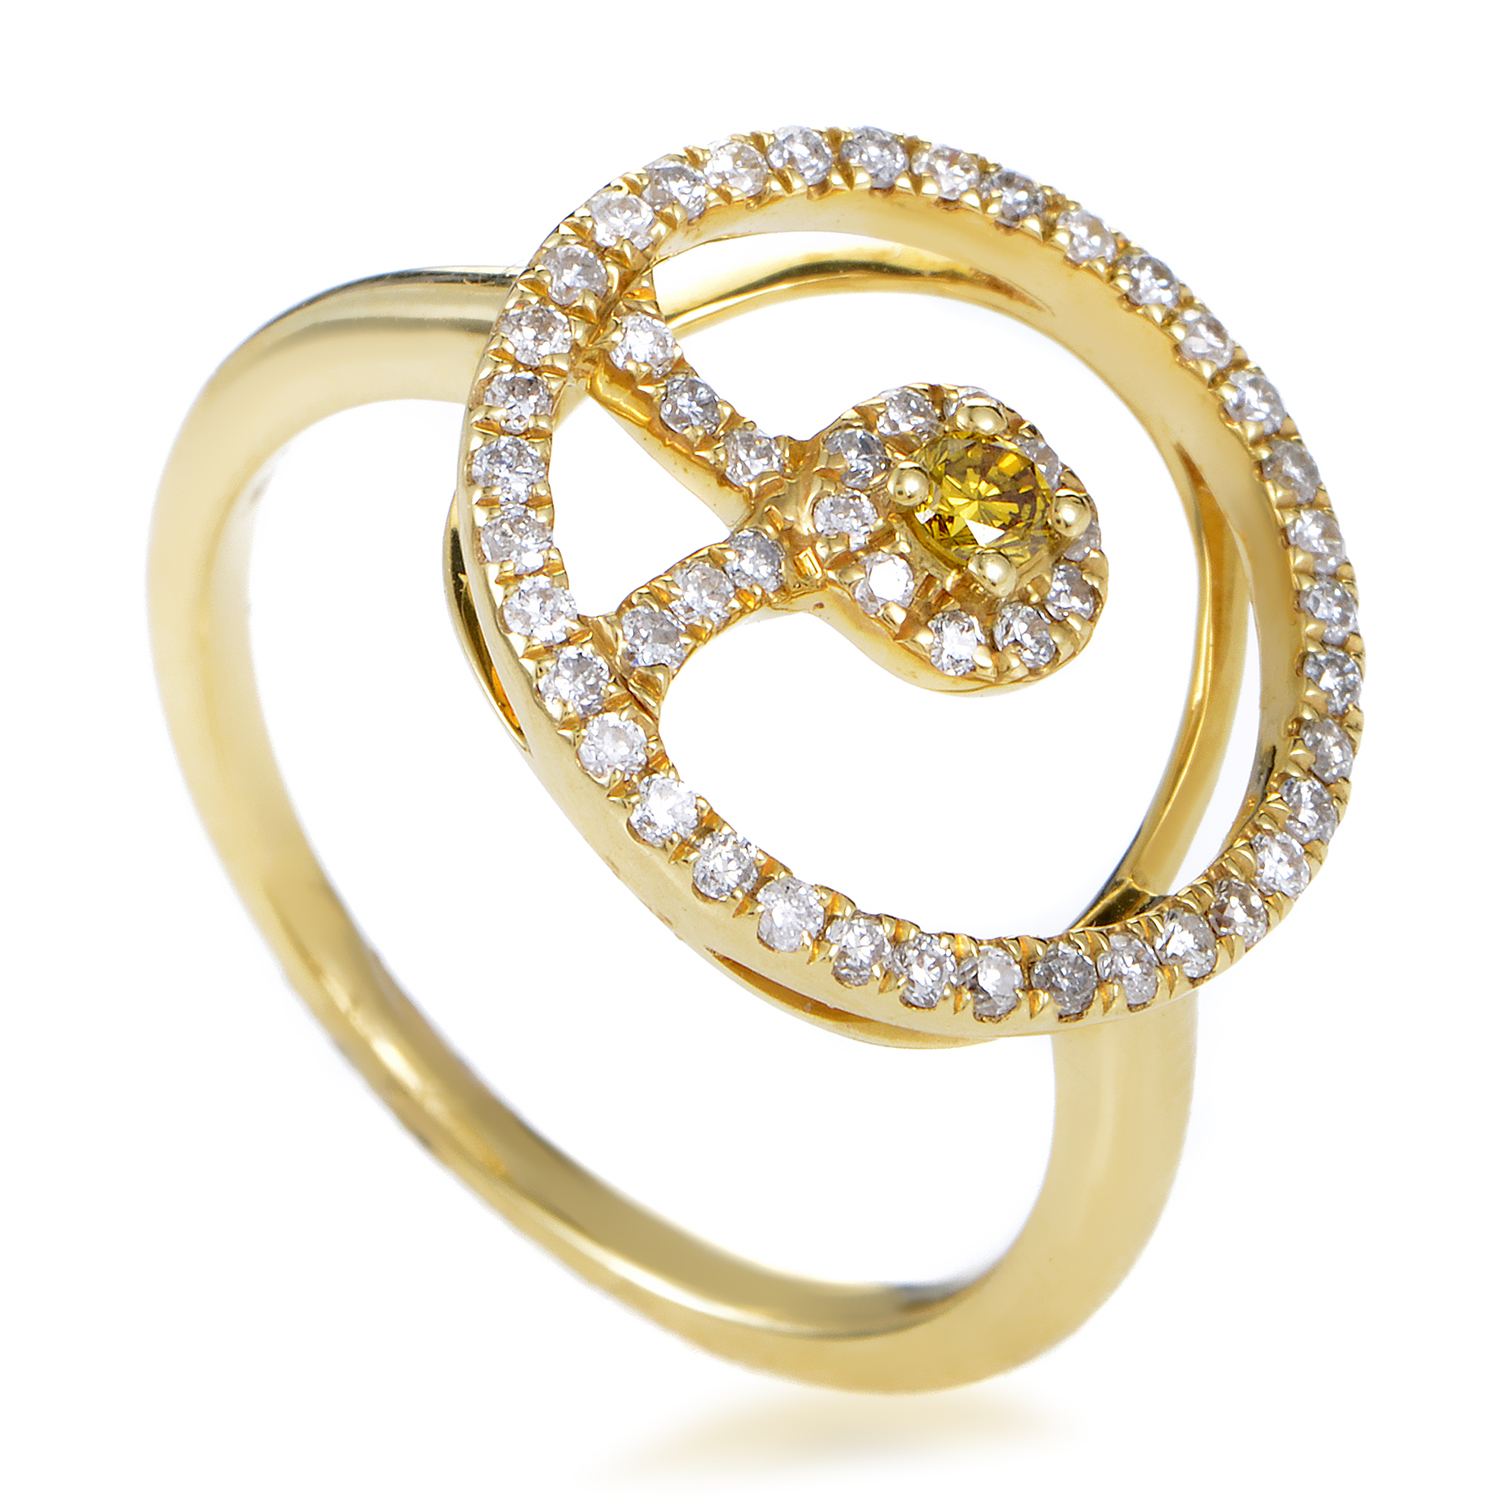 Women's 18K Yellow Gold White & Yellow Diamond Ring KO08951RZZ